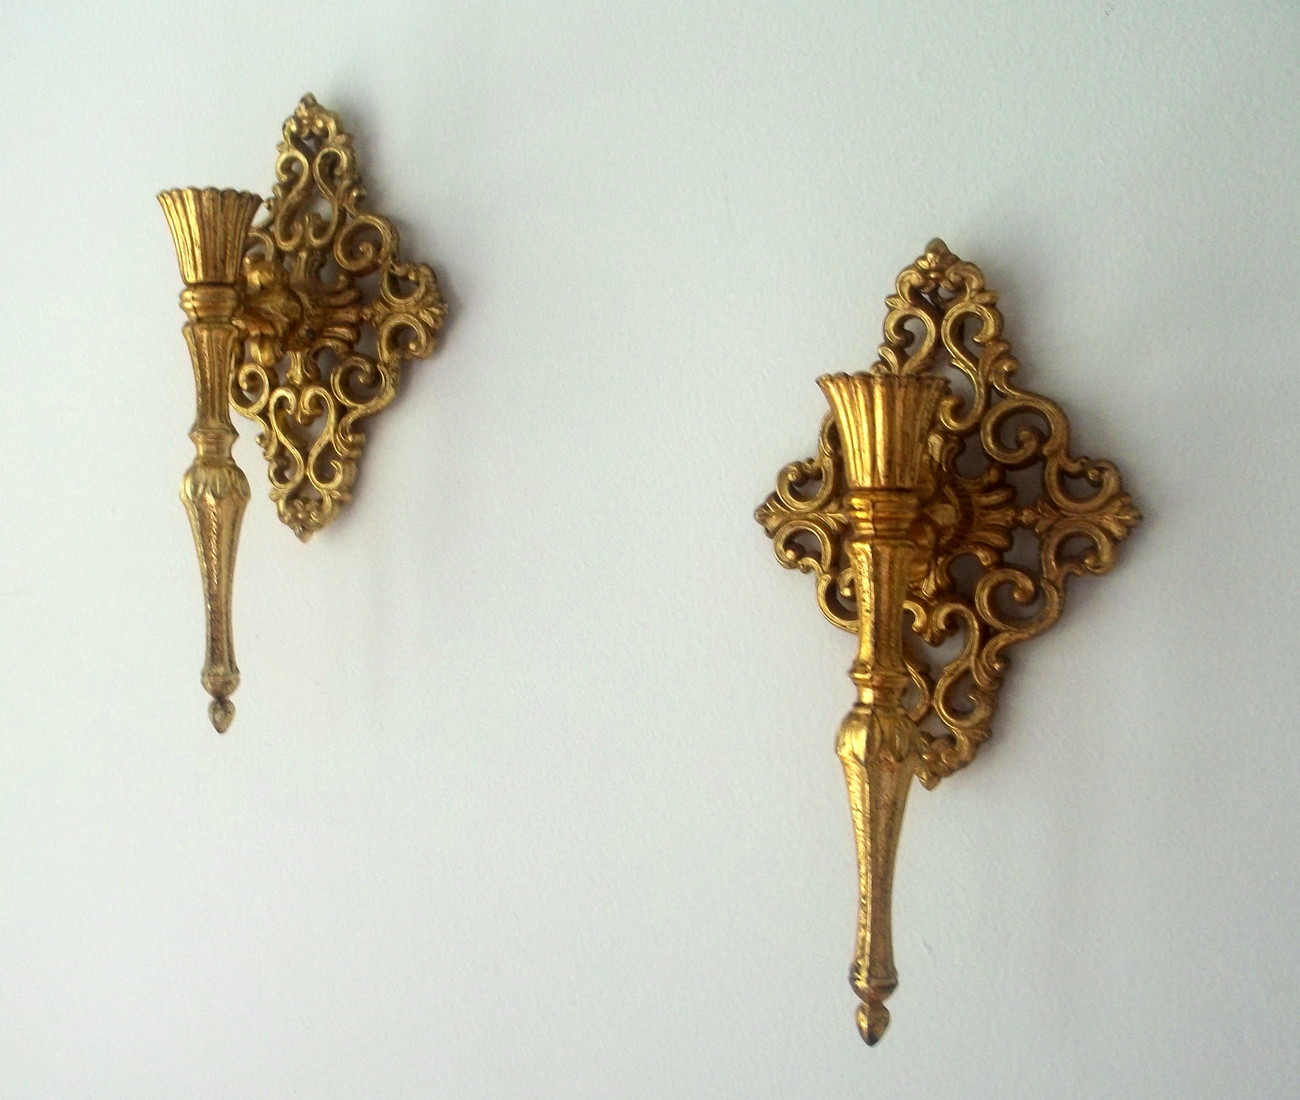 Candle Wall Sconces Nz : Pin Beach Candle Wall Sconces Pictures on Pinterest